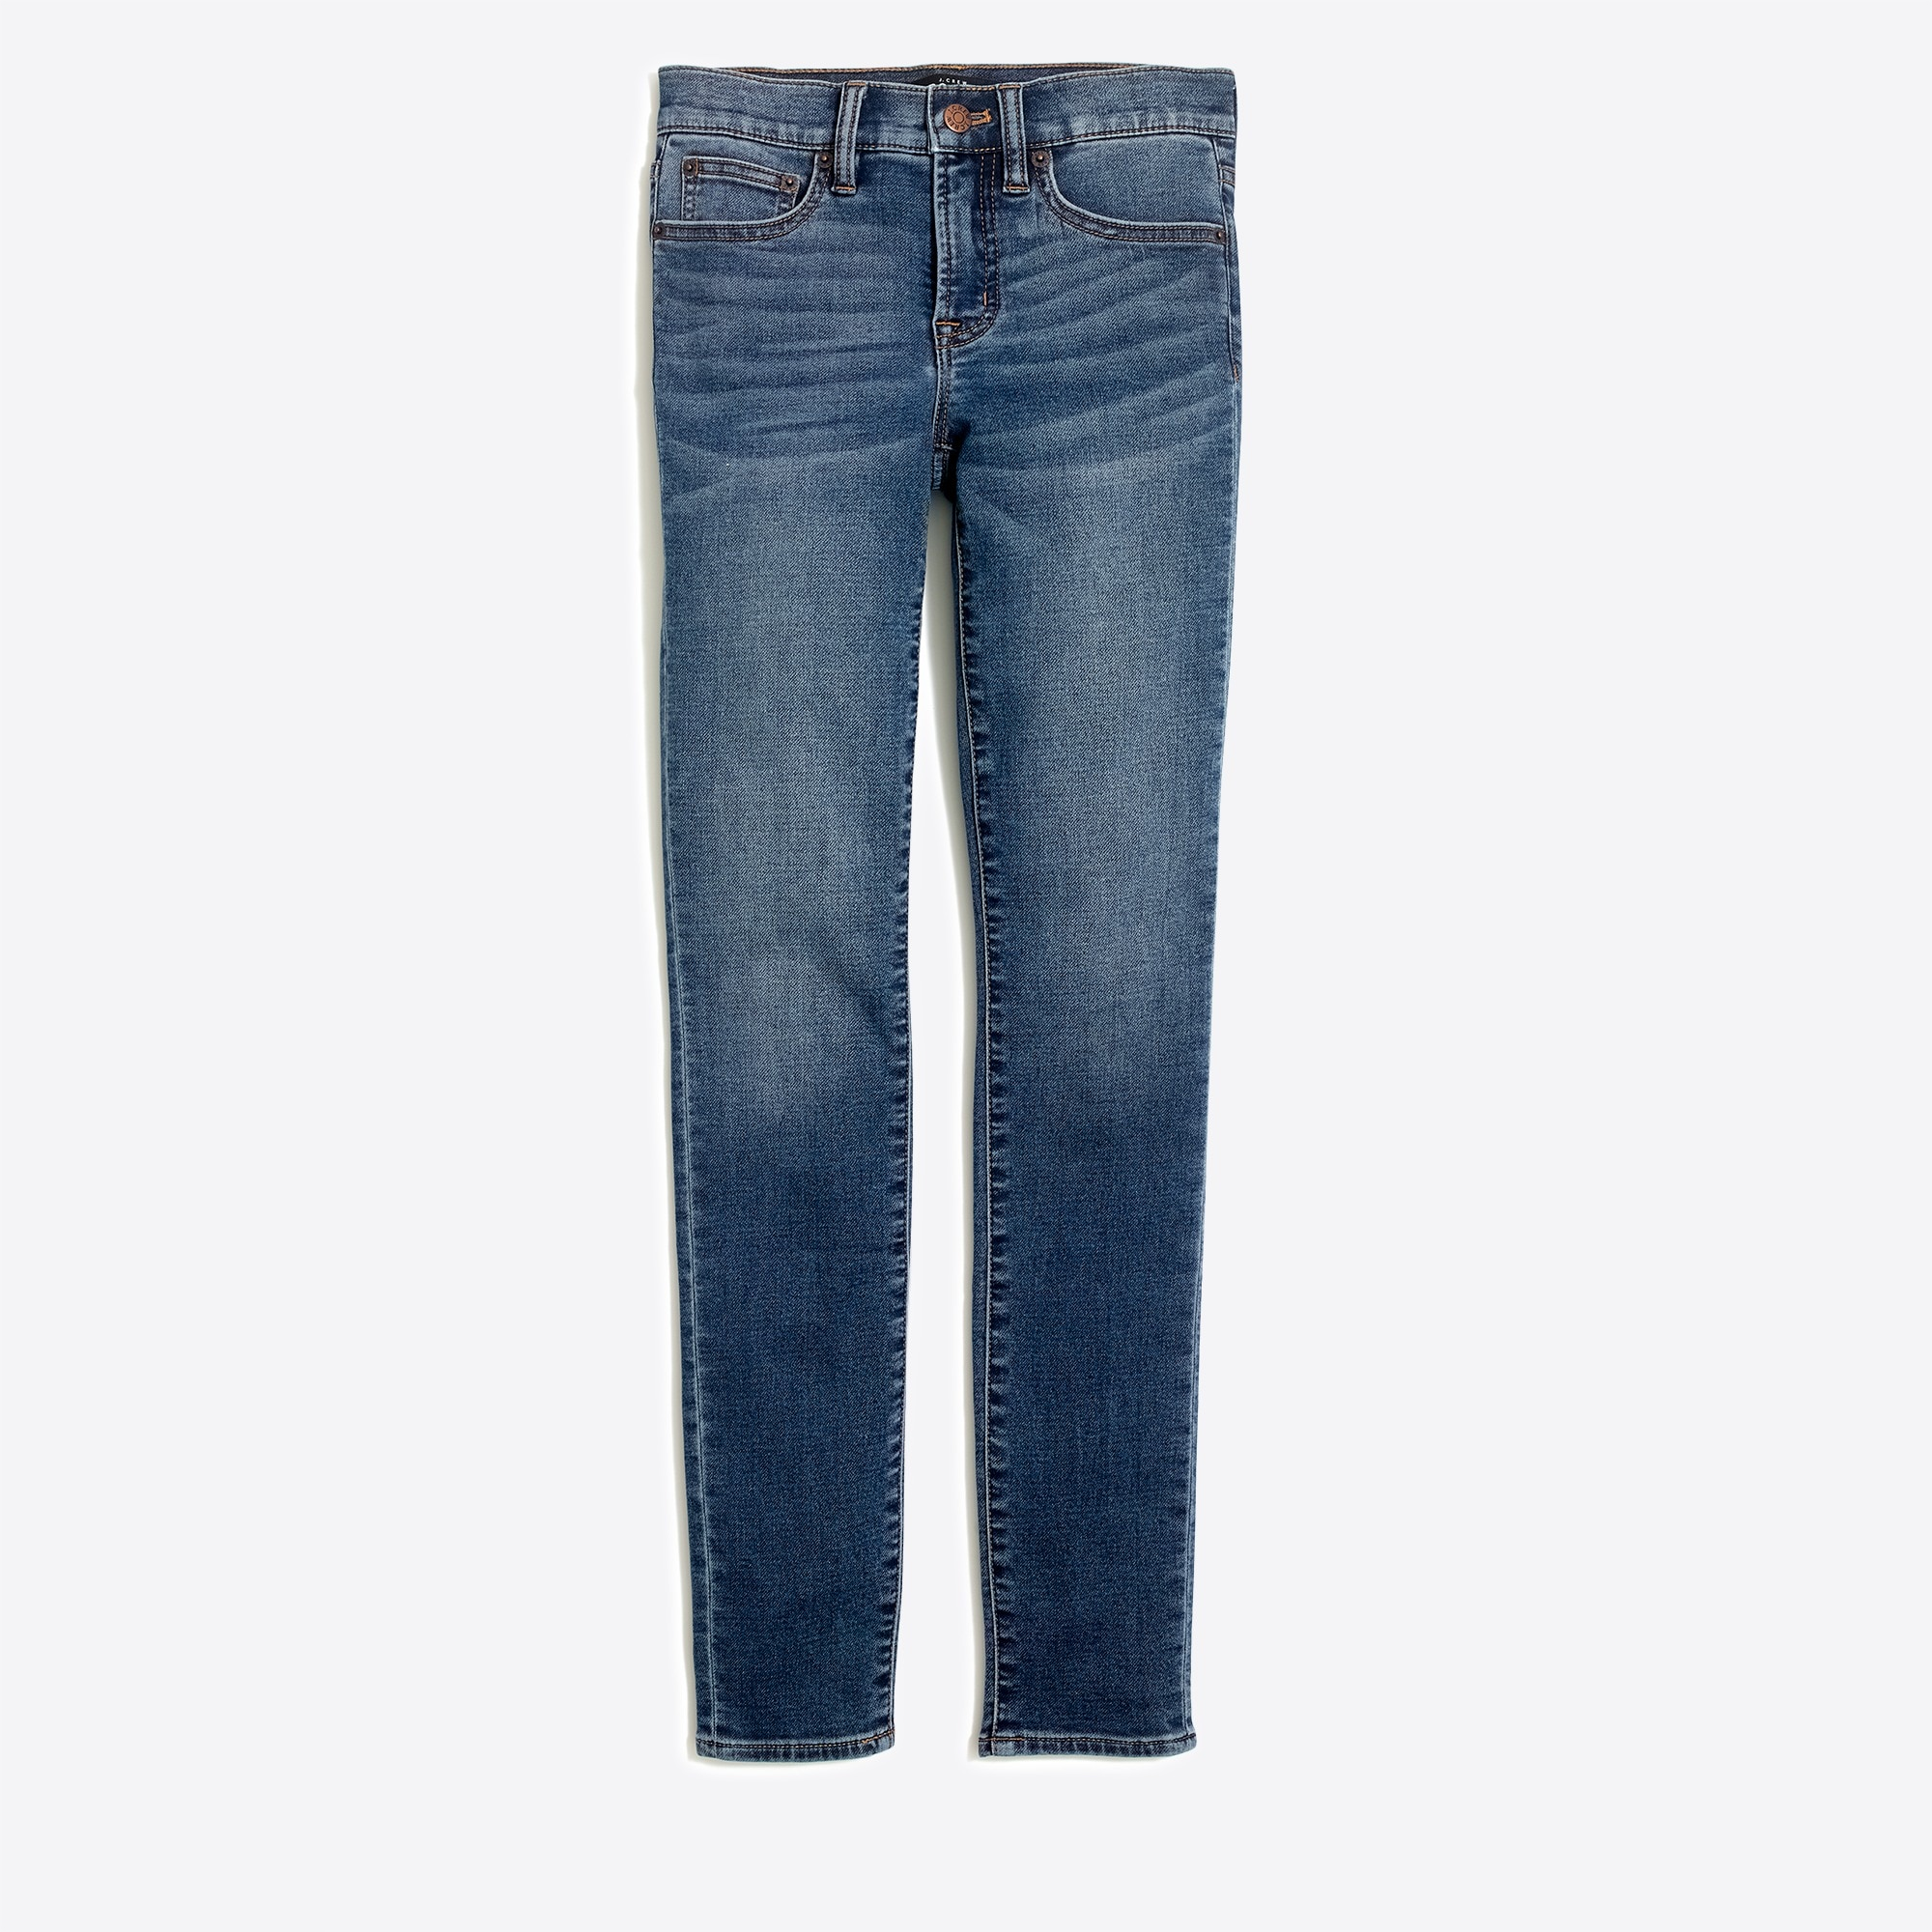 "Image 4 for 8"" anywhere skinny jean in Astoria wash"